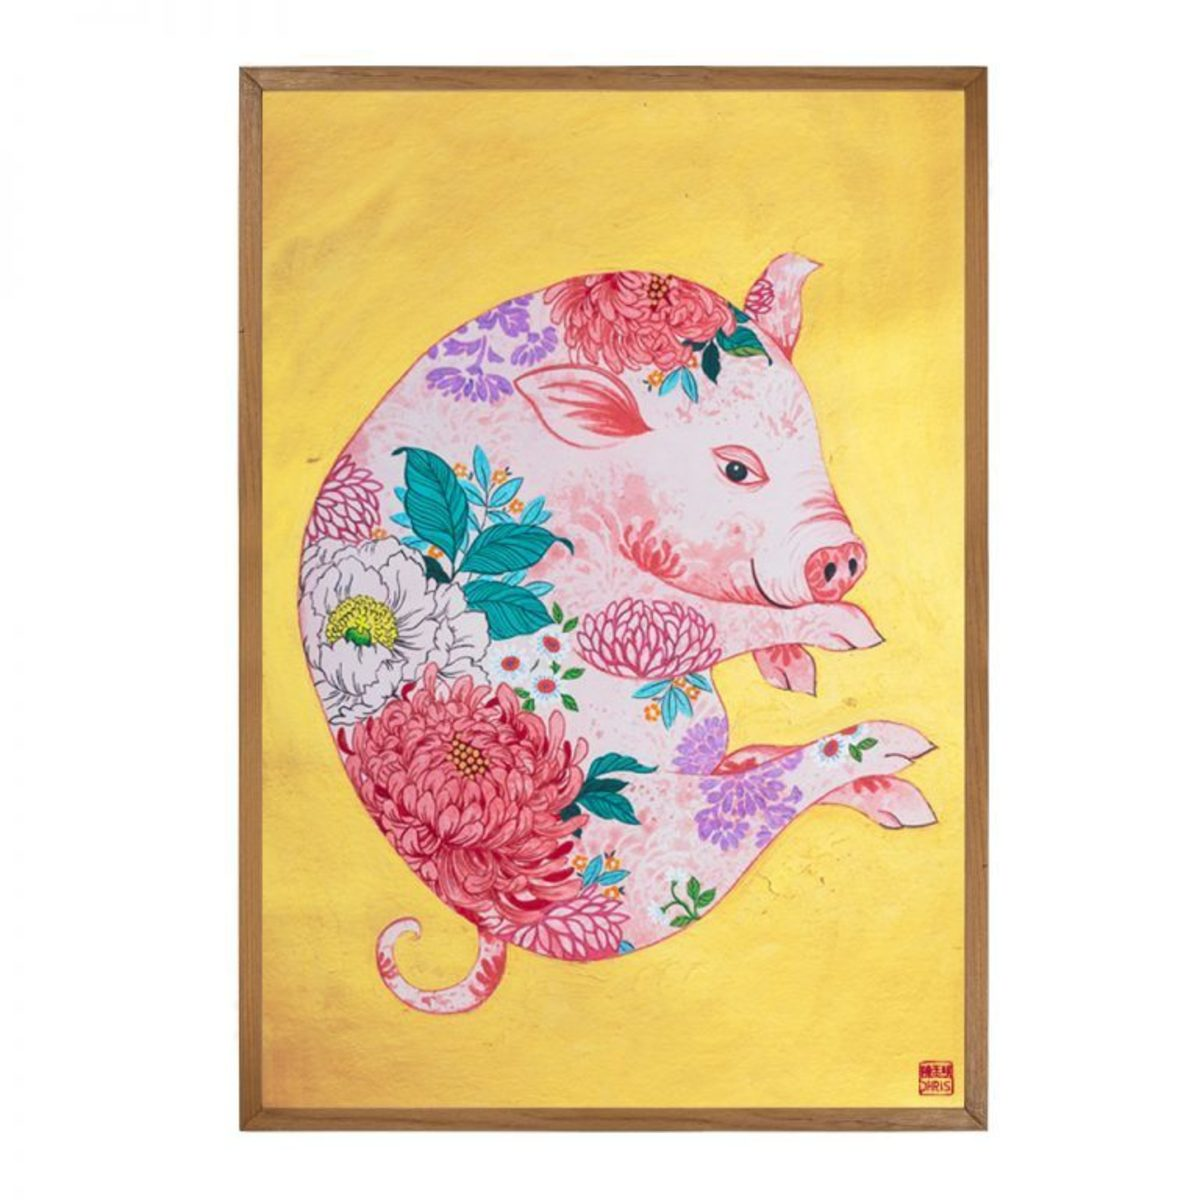 Pig - Limited Edition Print of 25 (Unframed)